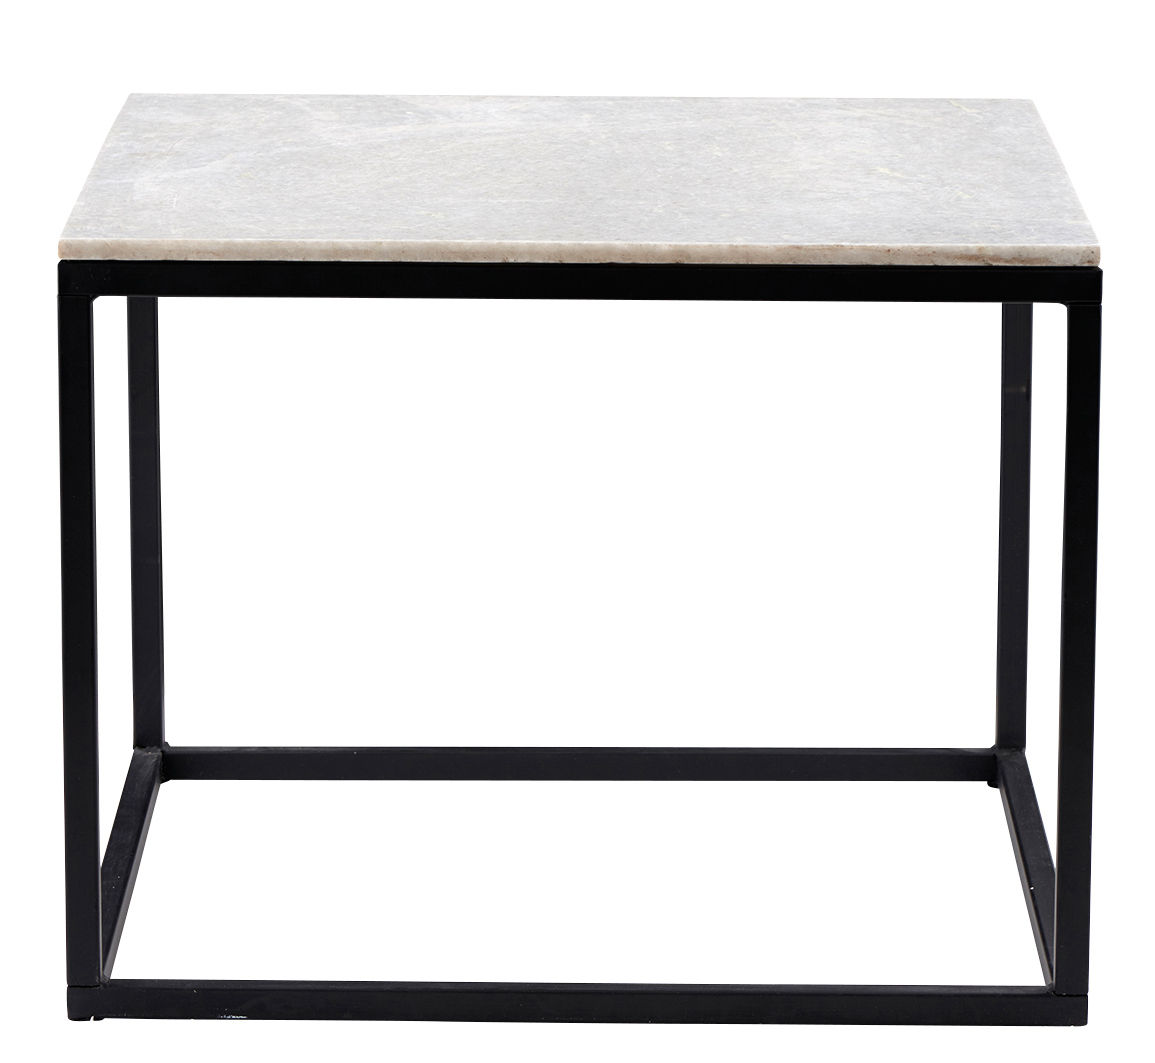 Coffee table marble top 60 x 60 cm marble top by - Table largeur 60 cm ...